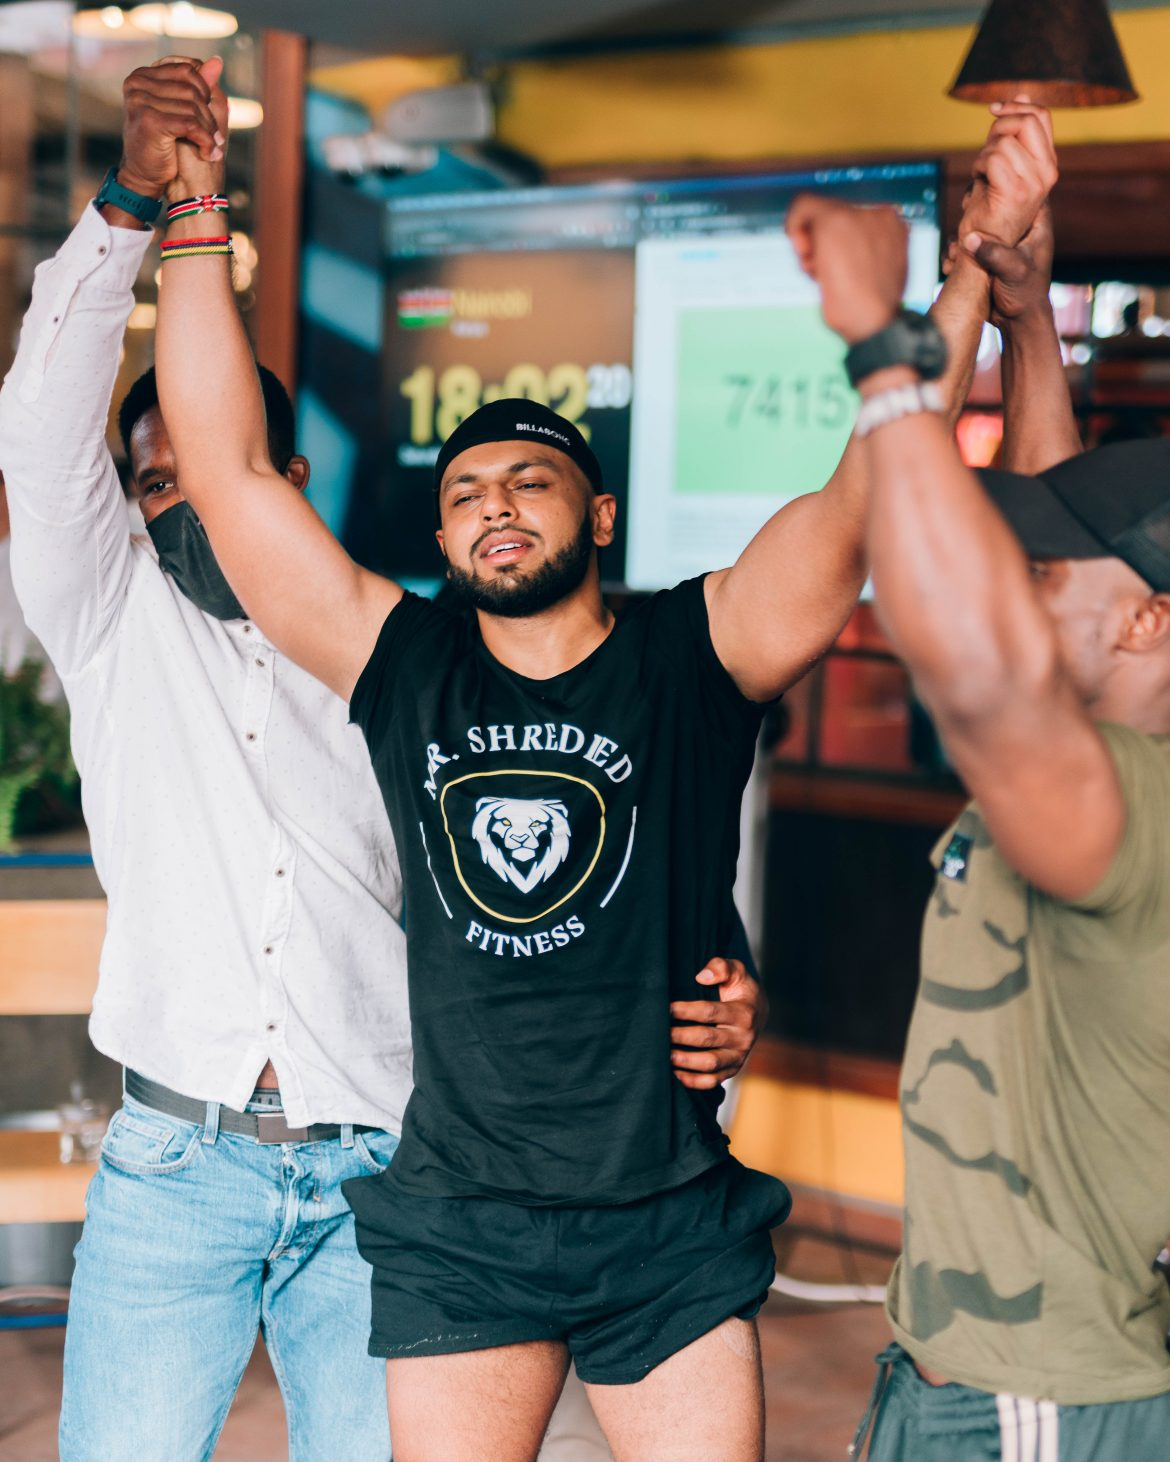 MOHAMMAD ADIL BREAKS GUINNESS WORLD RECORD FOR MOST BURPEES UNDER 12 HOURS